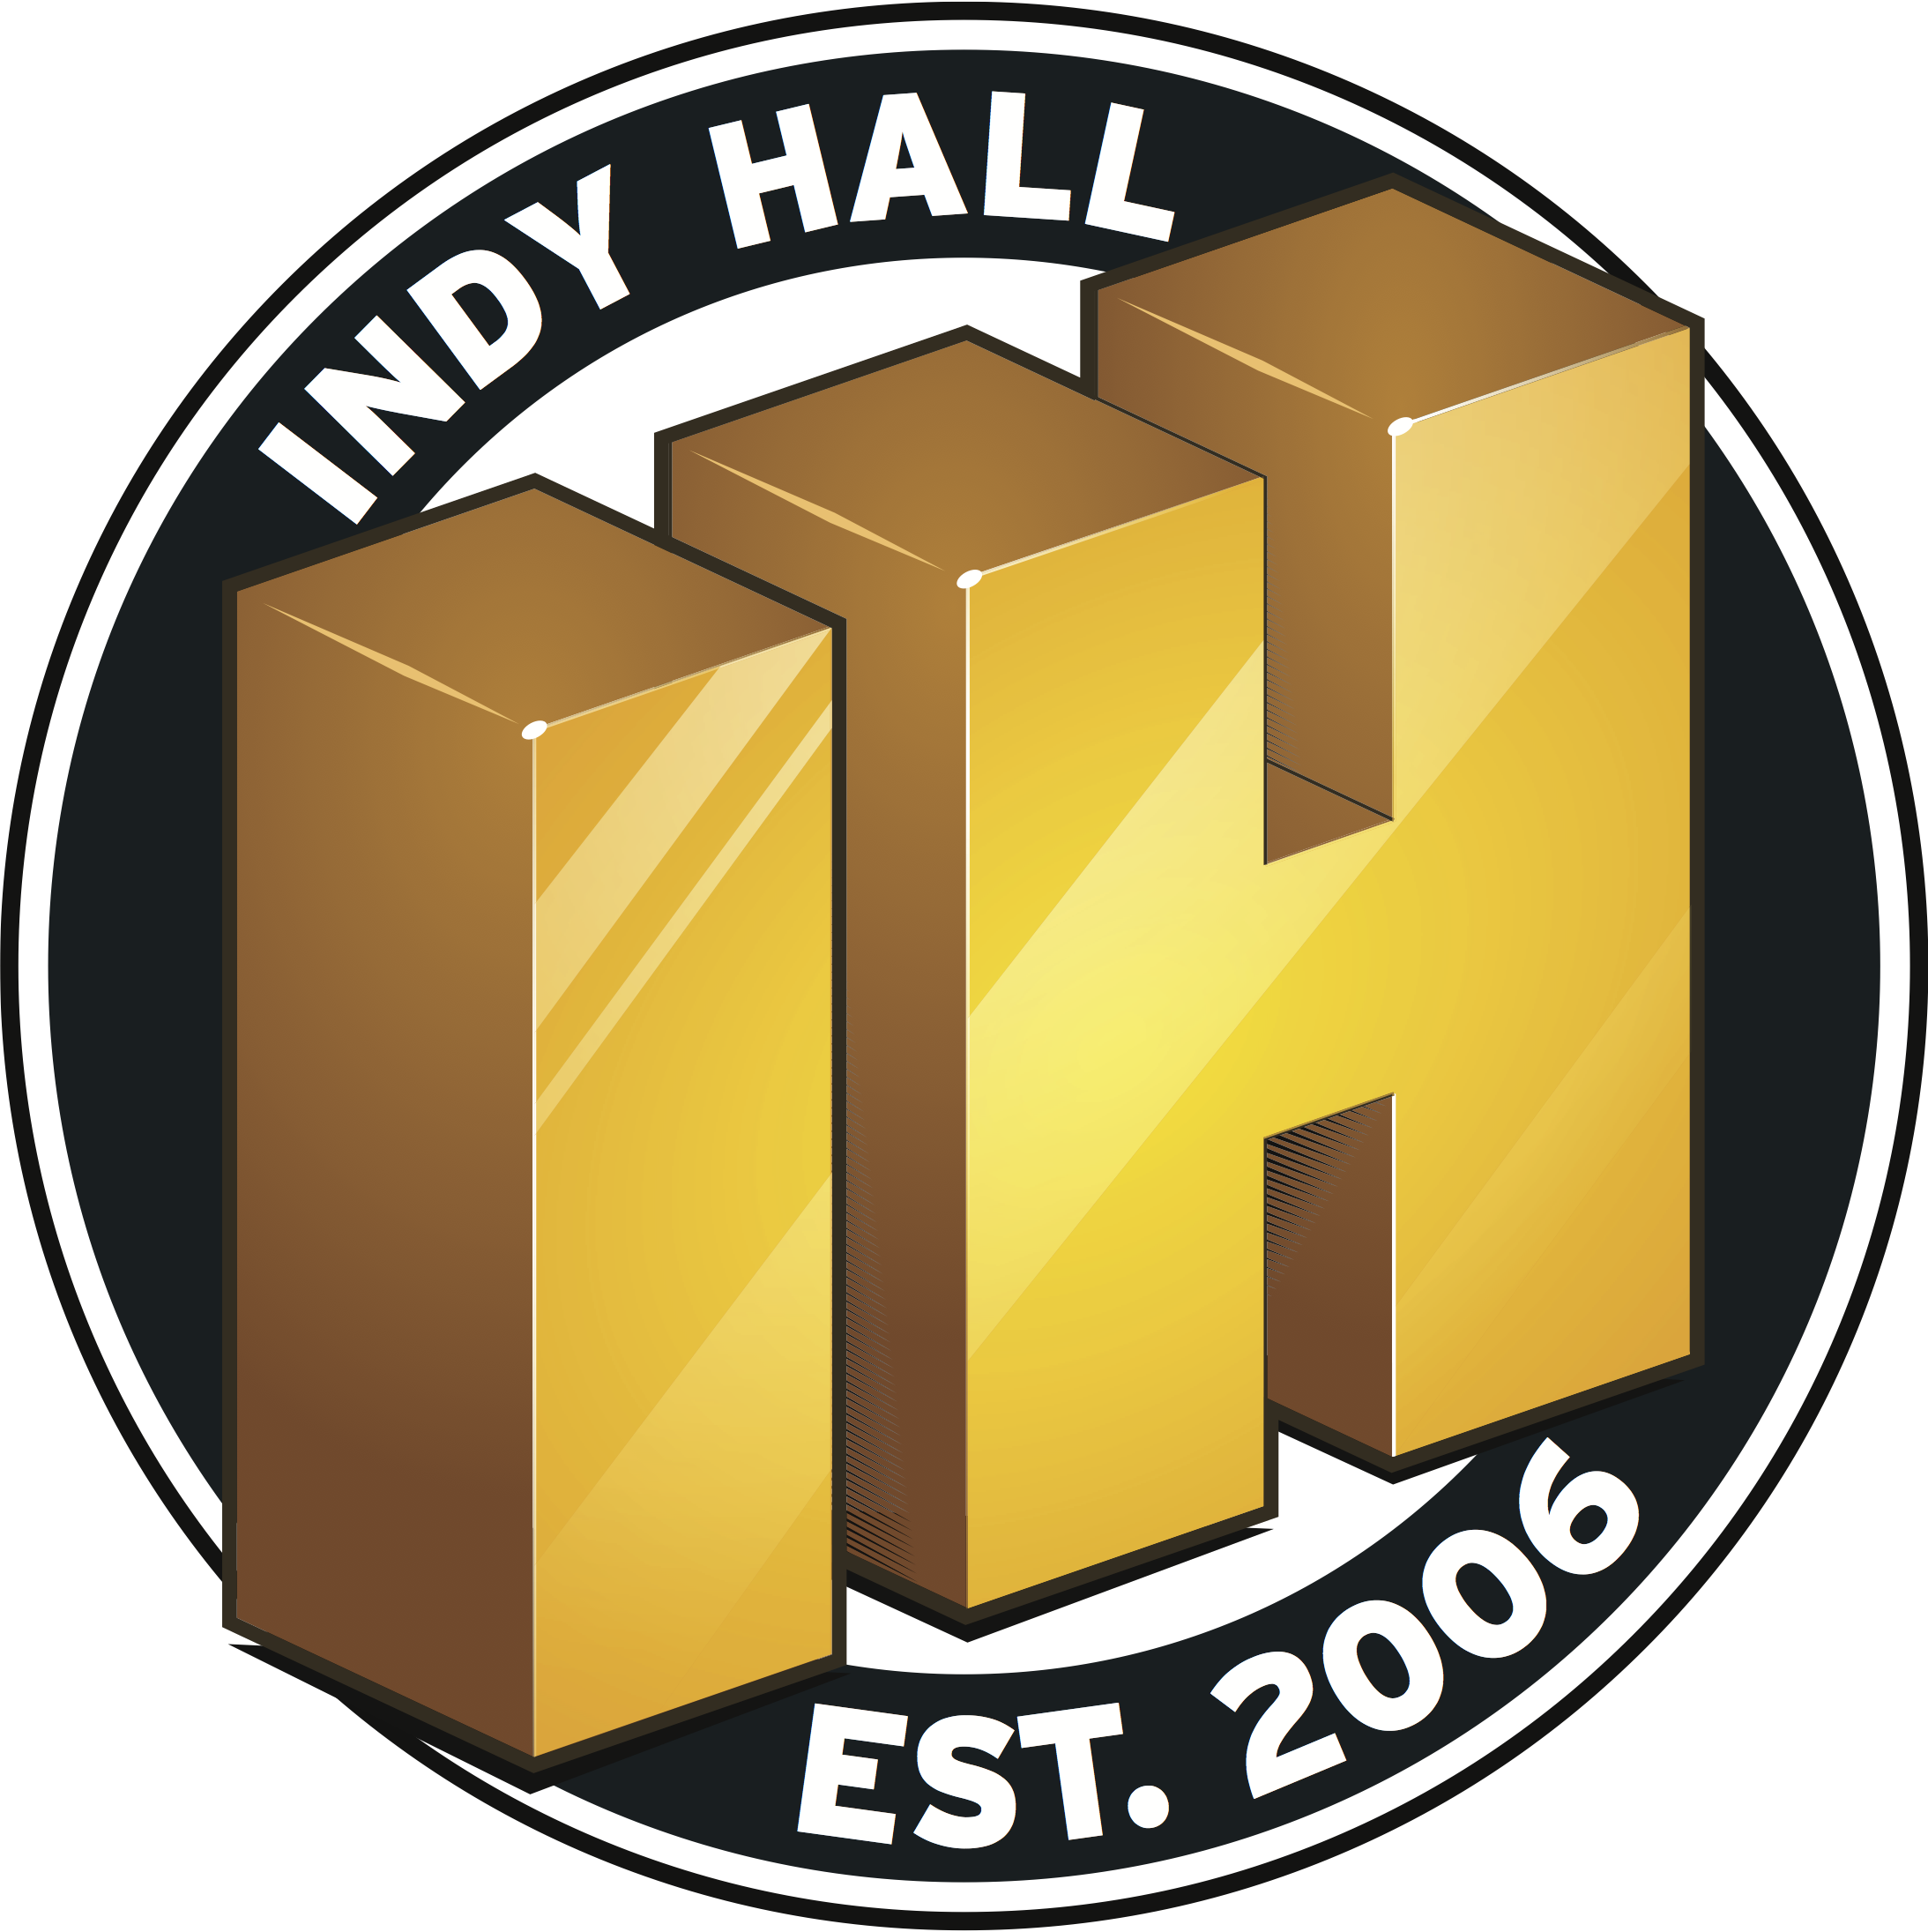 Indy Hall Radio